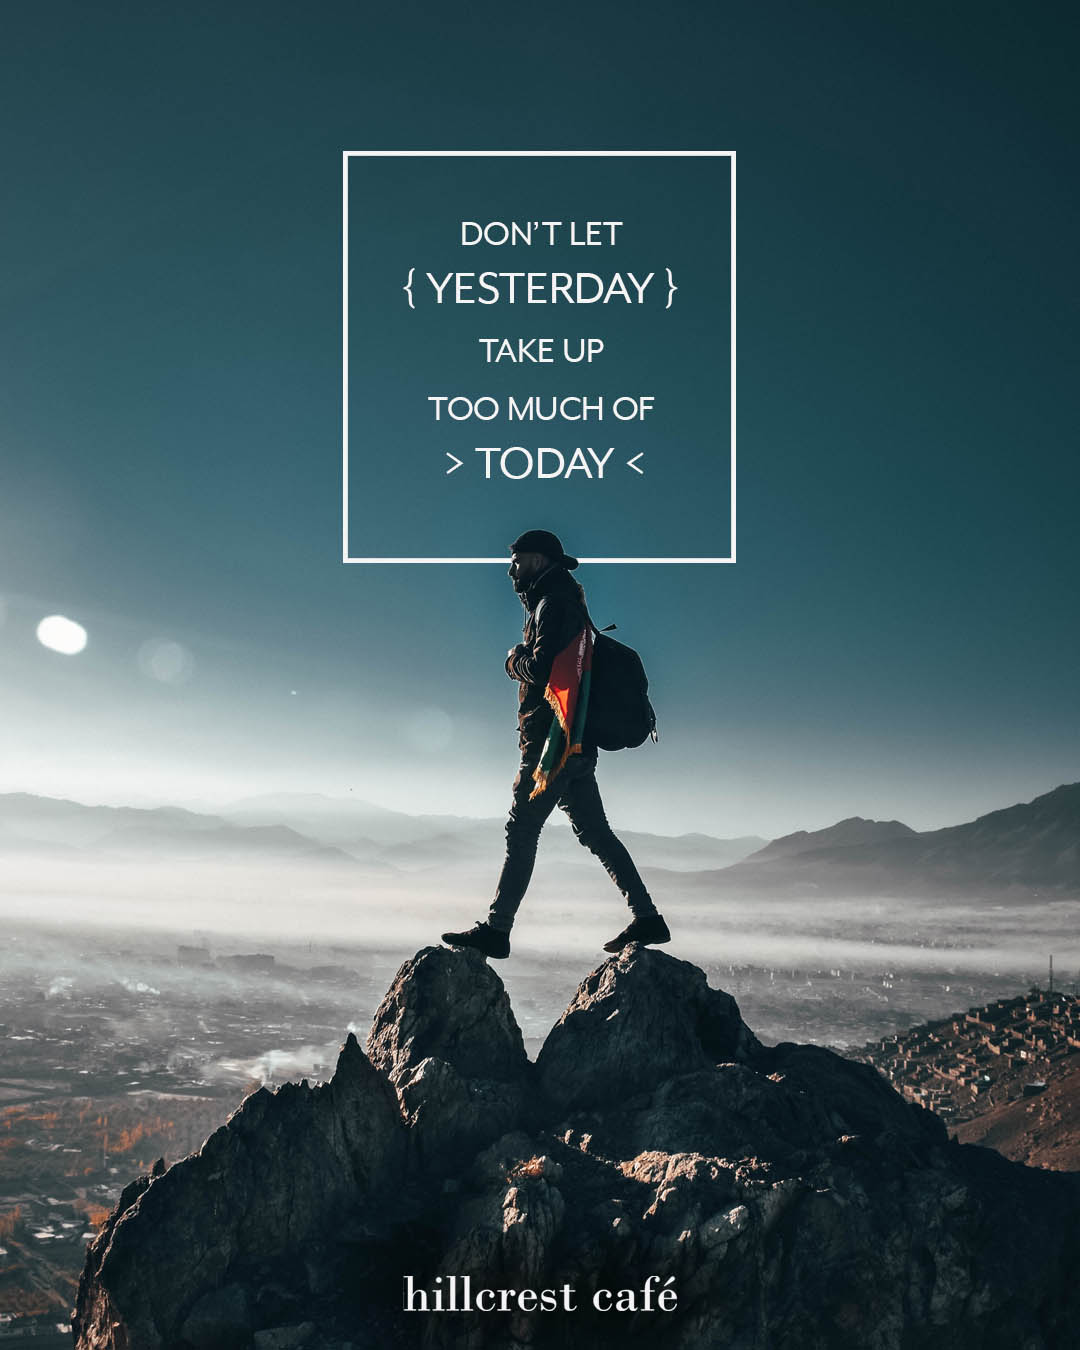 Poster: Don't let yesterday take too much of today.